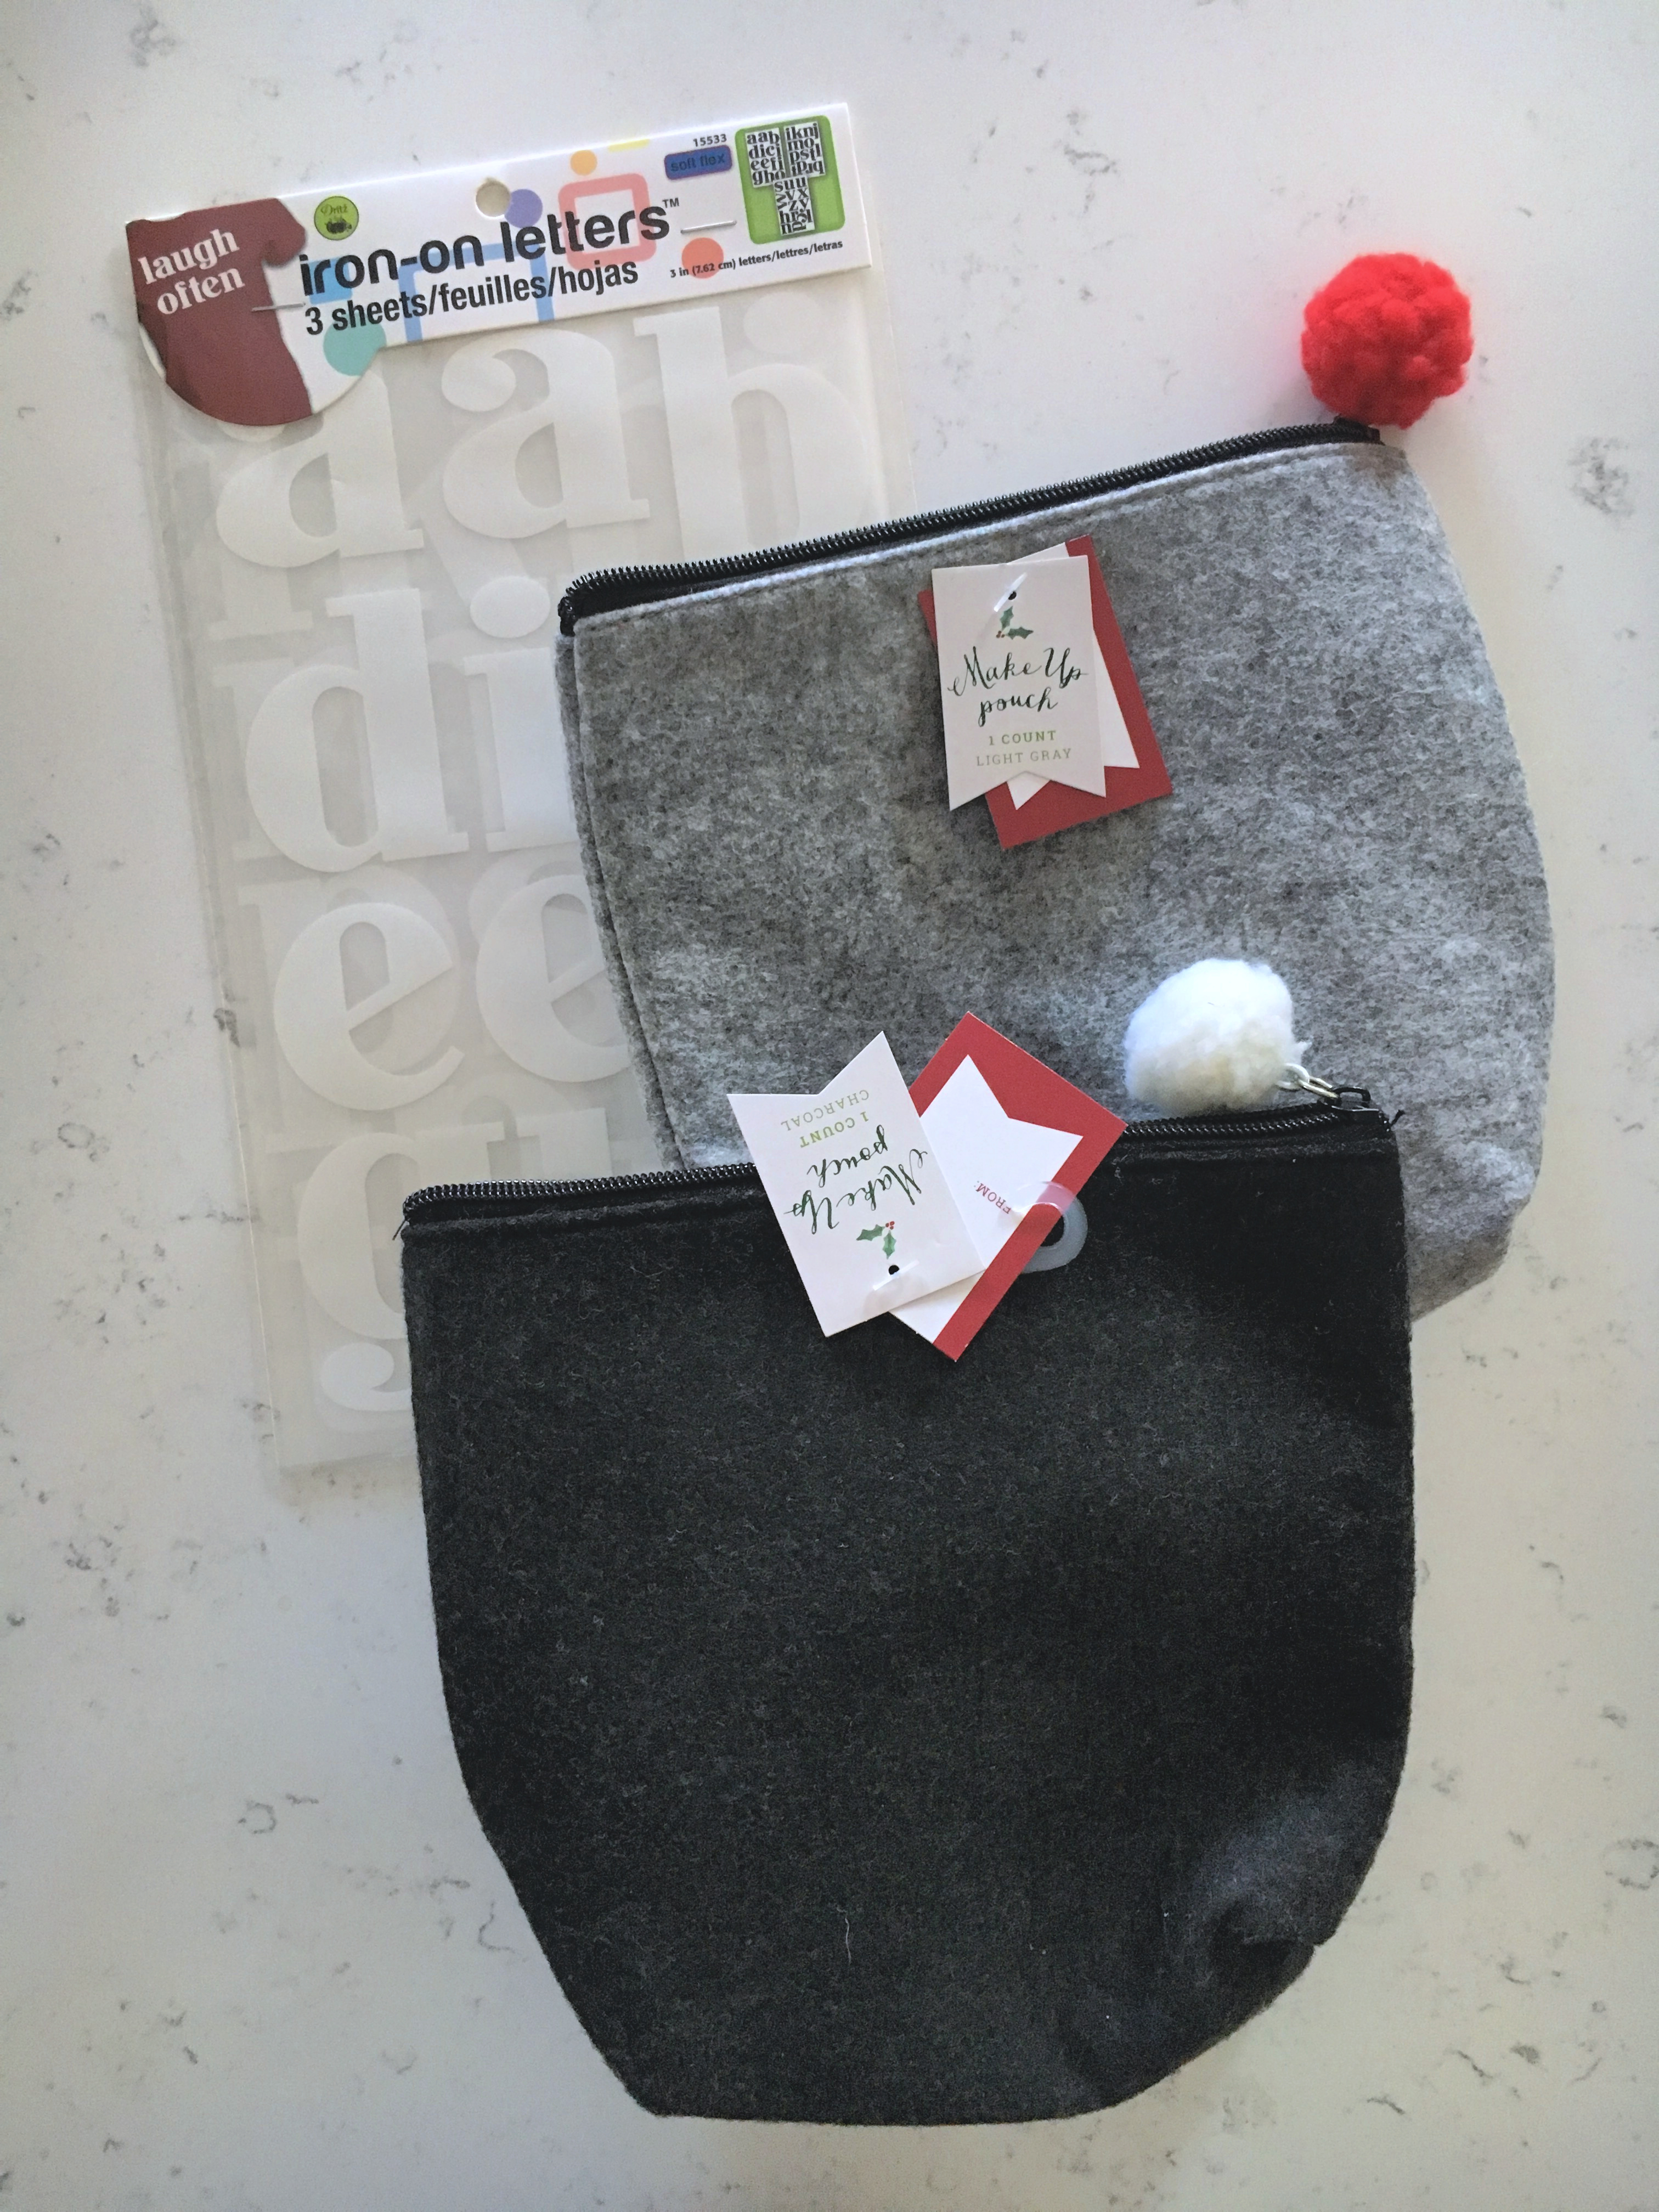 My simple makeup bag gift is a wonderful gift idea that can be personalized for any one on your list this holiday season!